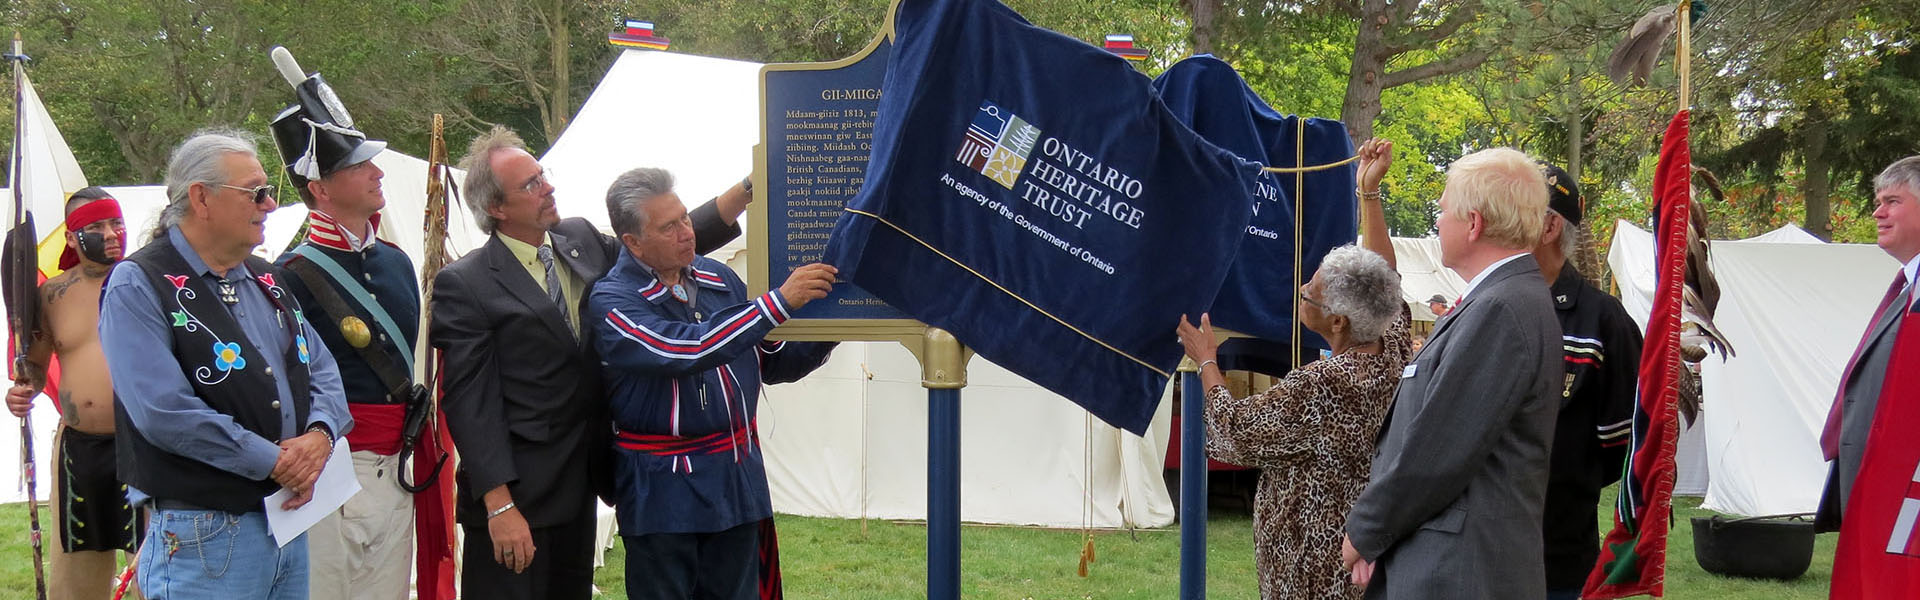 Plaque unveiling commemorating the Battle of Moraviantown, 2013